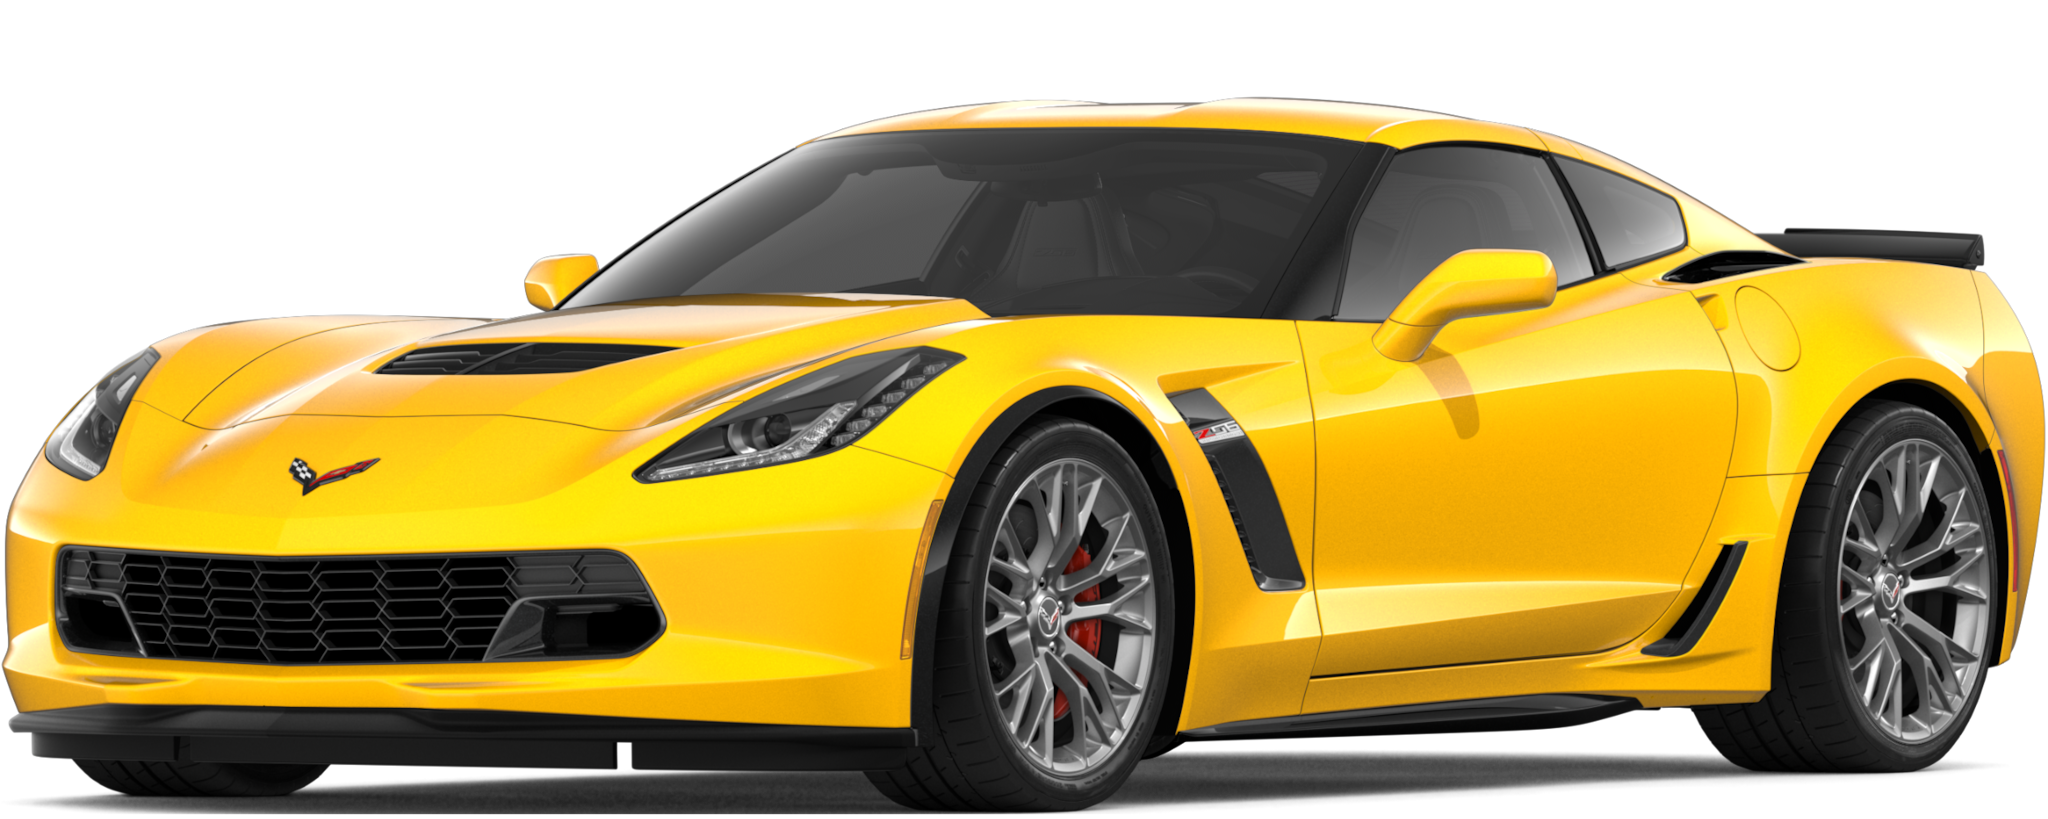 Superauto Corvette Z06 2019: Lateral